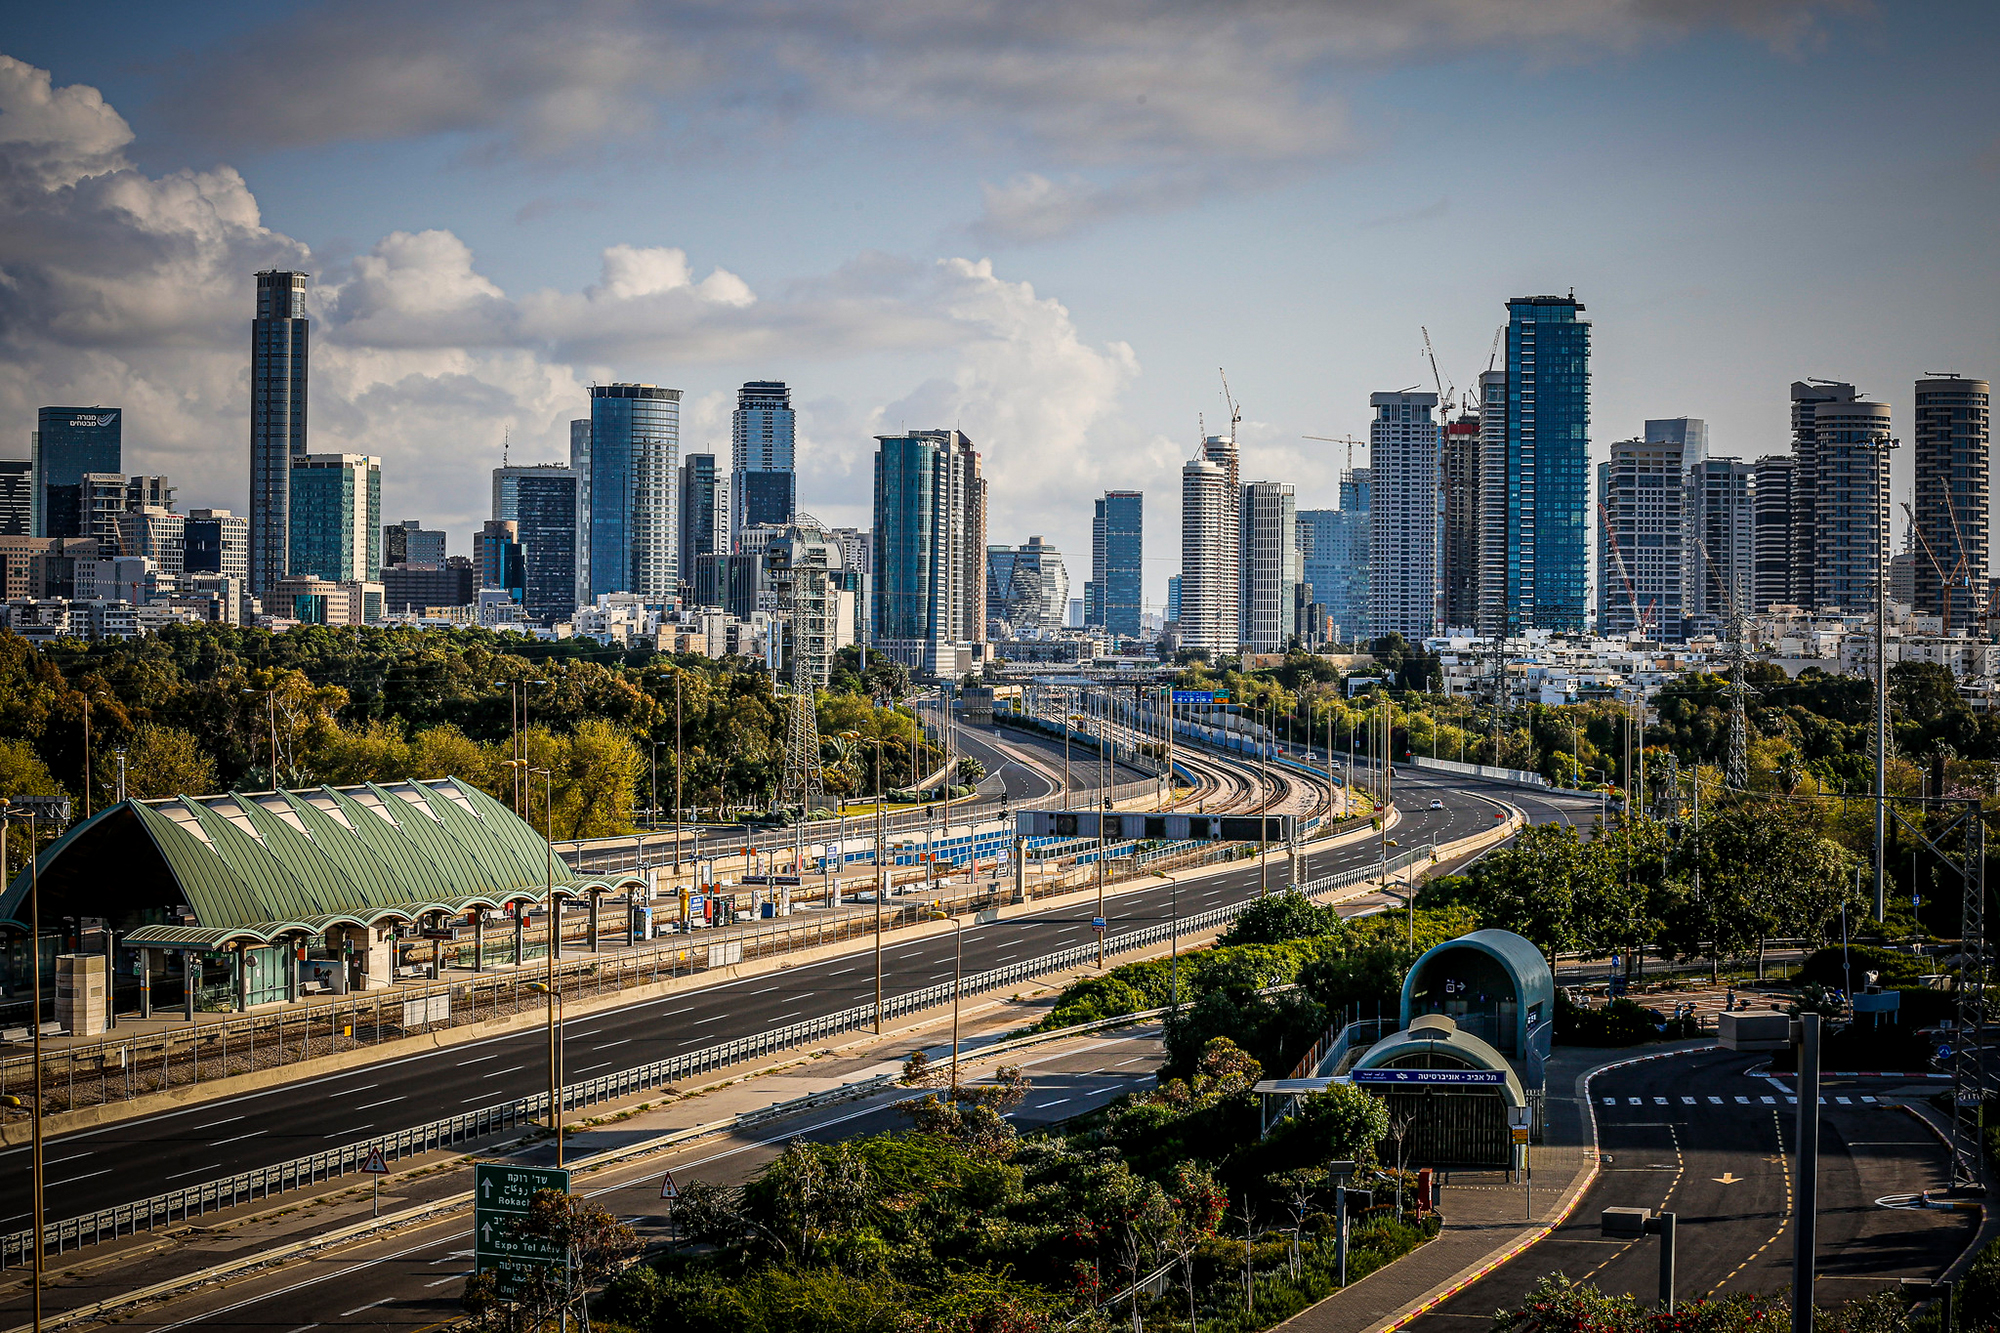 Tel Aviv set to become first city with electric roads that charge public transportation